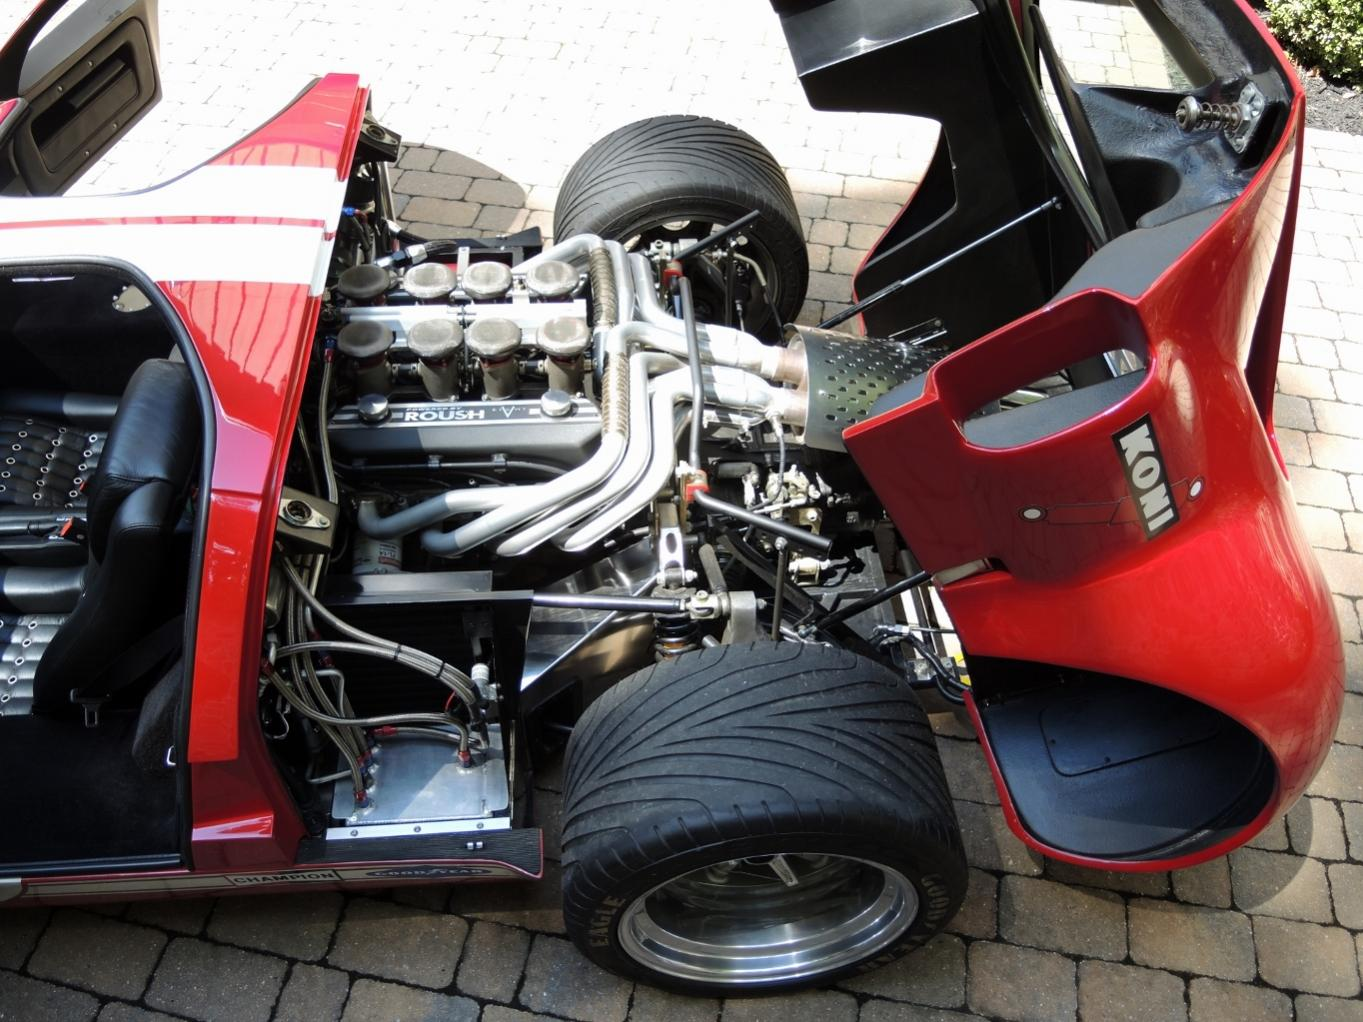 1966 CAV GT For Sale **SOLD**-engine-l1-1920x1440-1364x1023-jpg